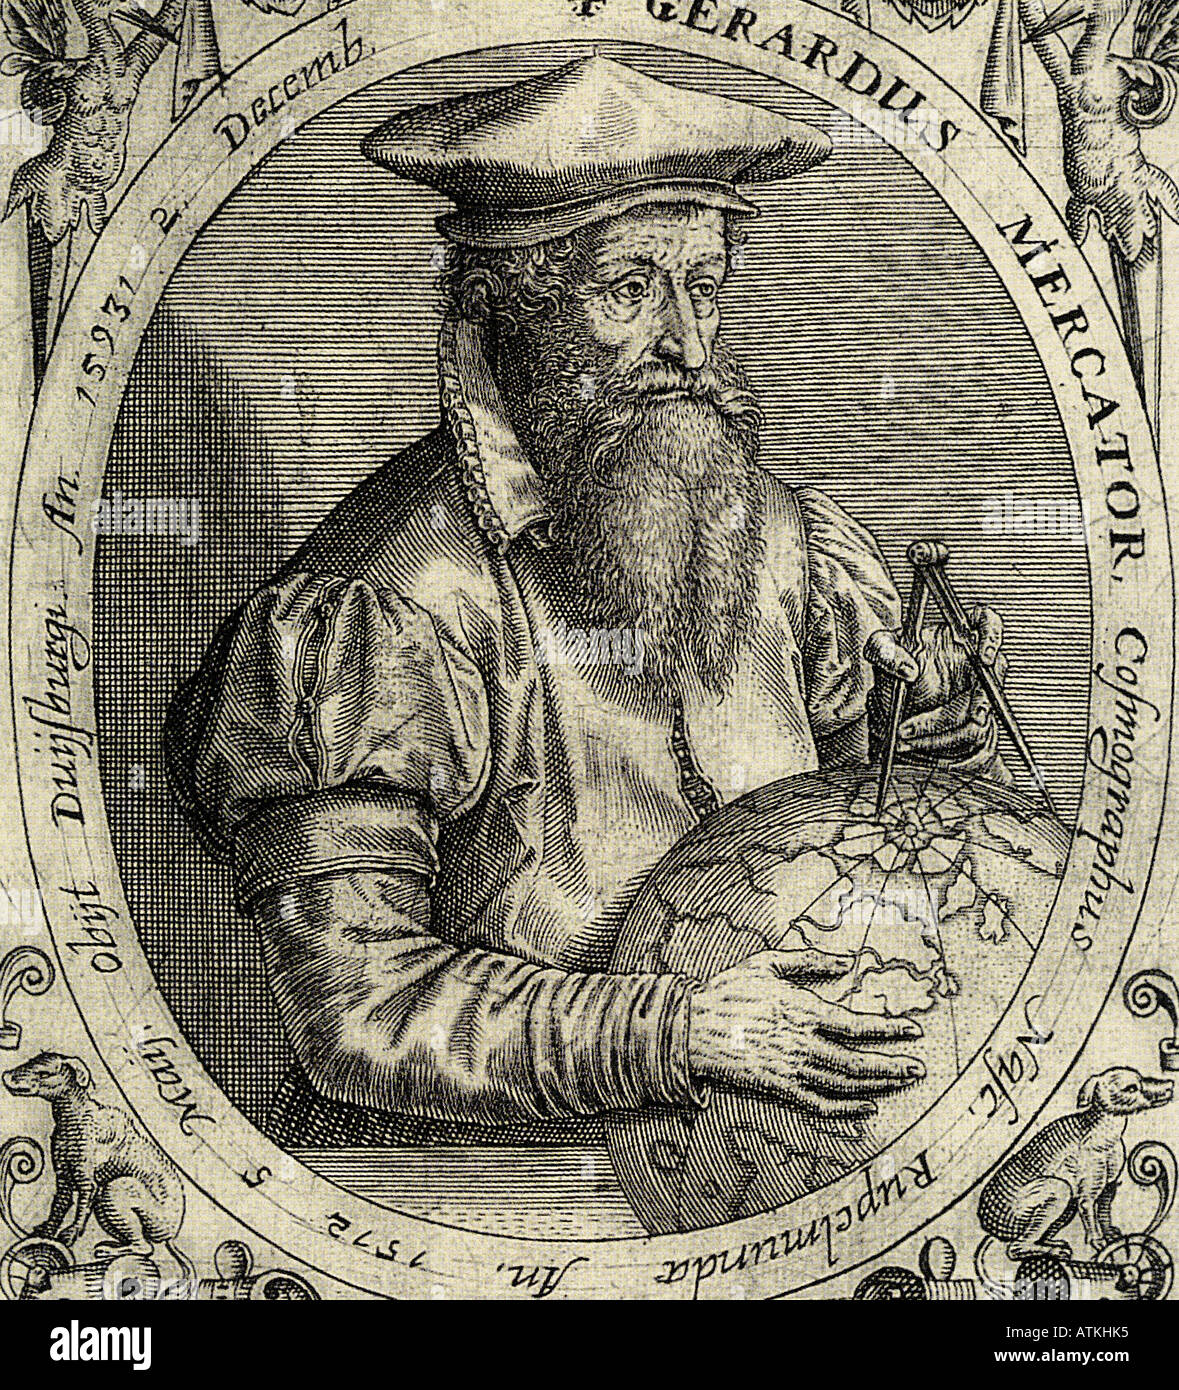 GERARDUS MERCATOR 1512 to 1594 Flemish cartographer who introduced the idea  of a cylindrical plan to map the globe